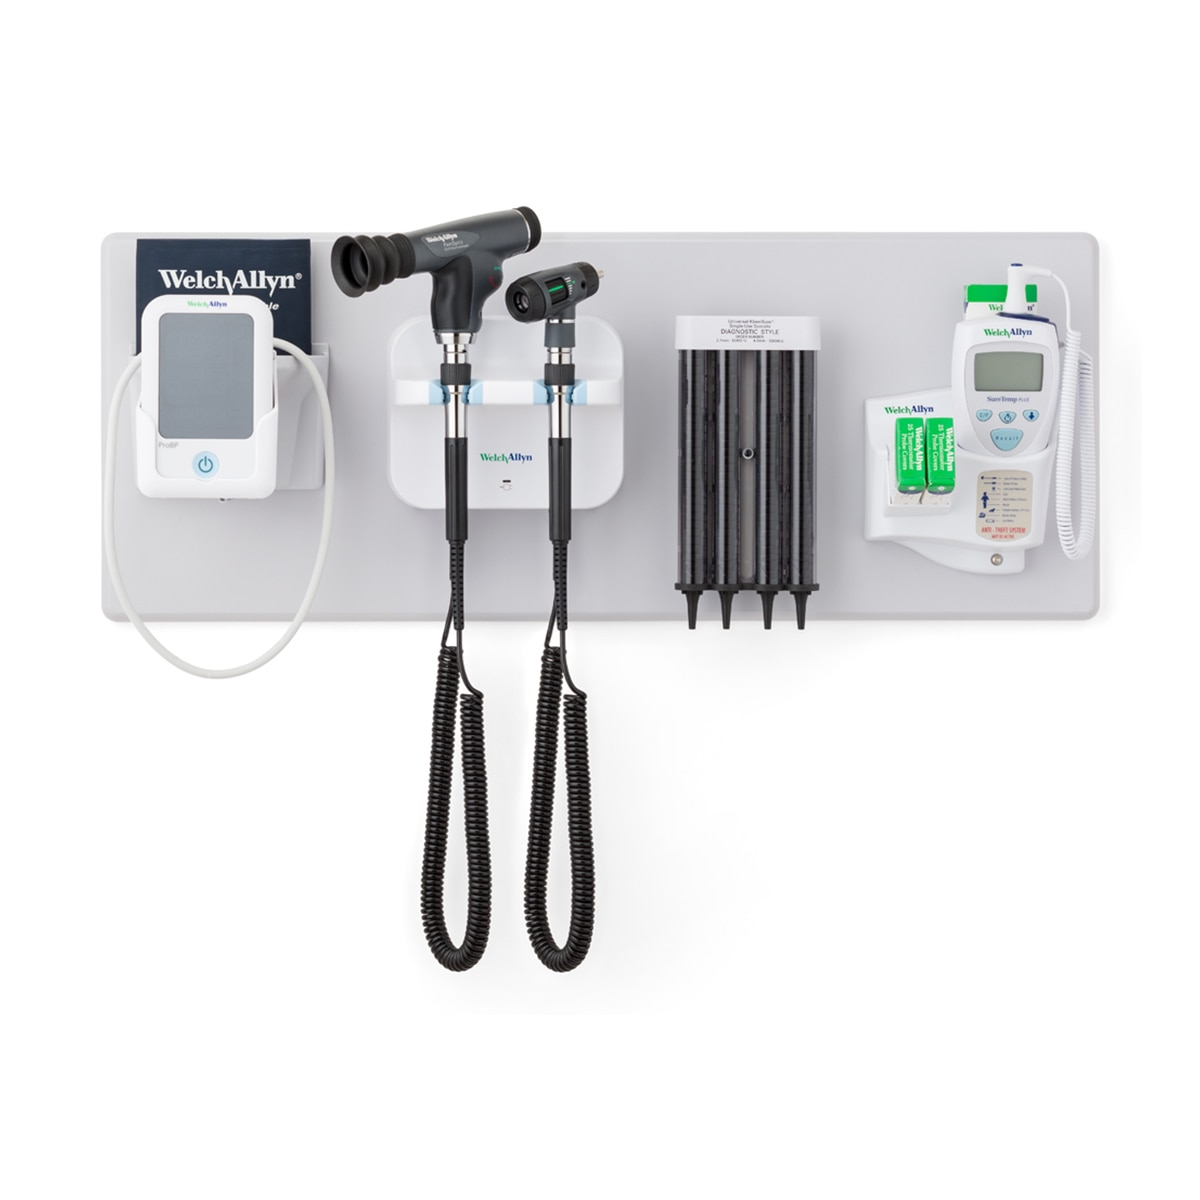 777 Integrated Wall System with ProBP 2000 device, otoscope, PanOptic ophthalmoscope, probe covers and SureTemp thermometer